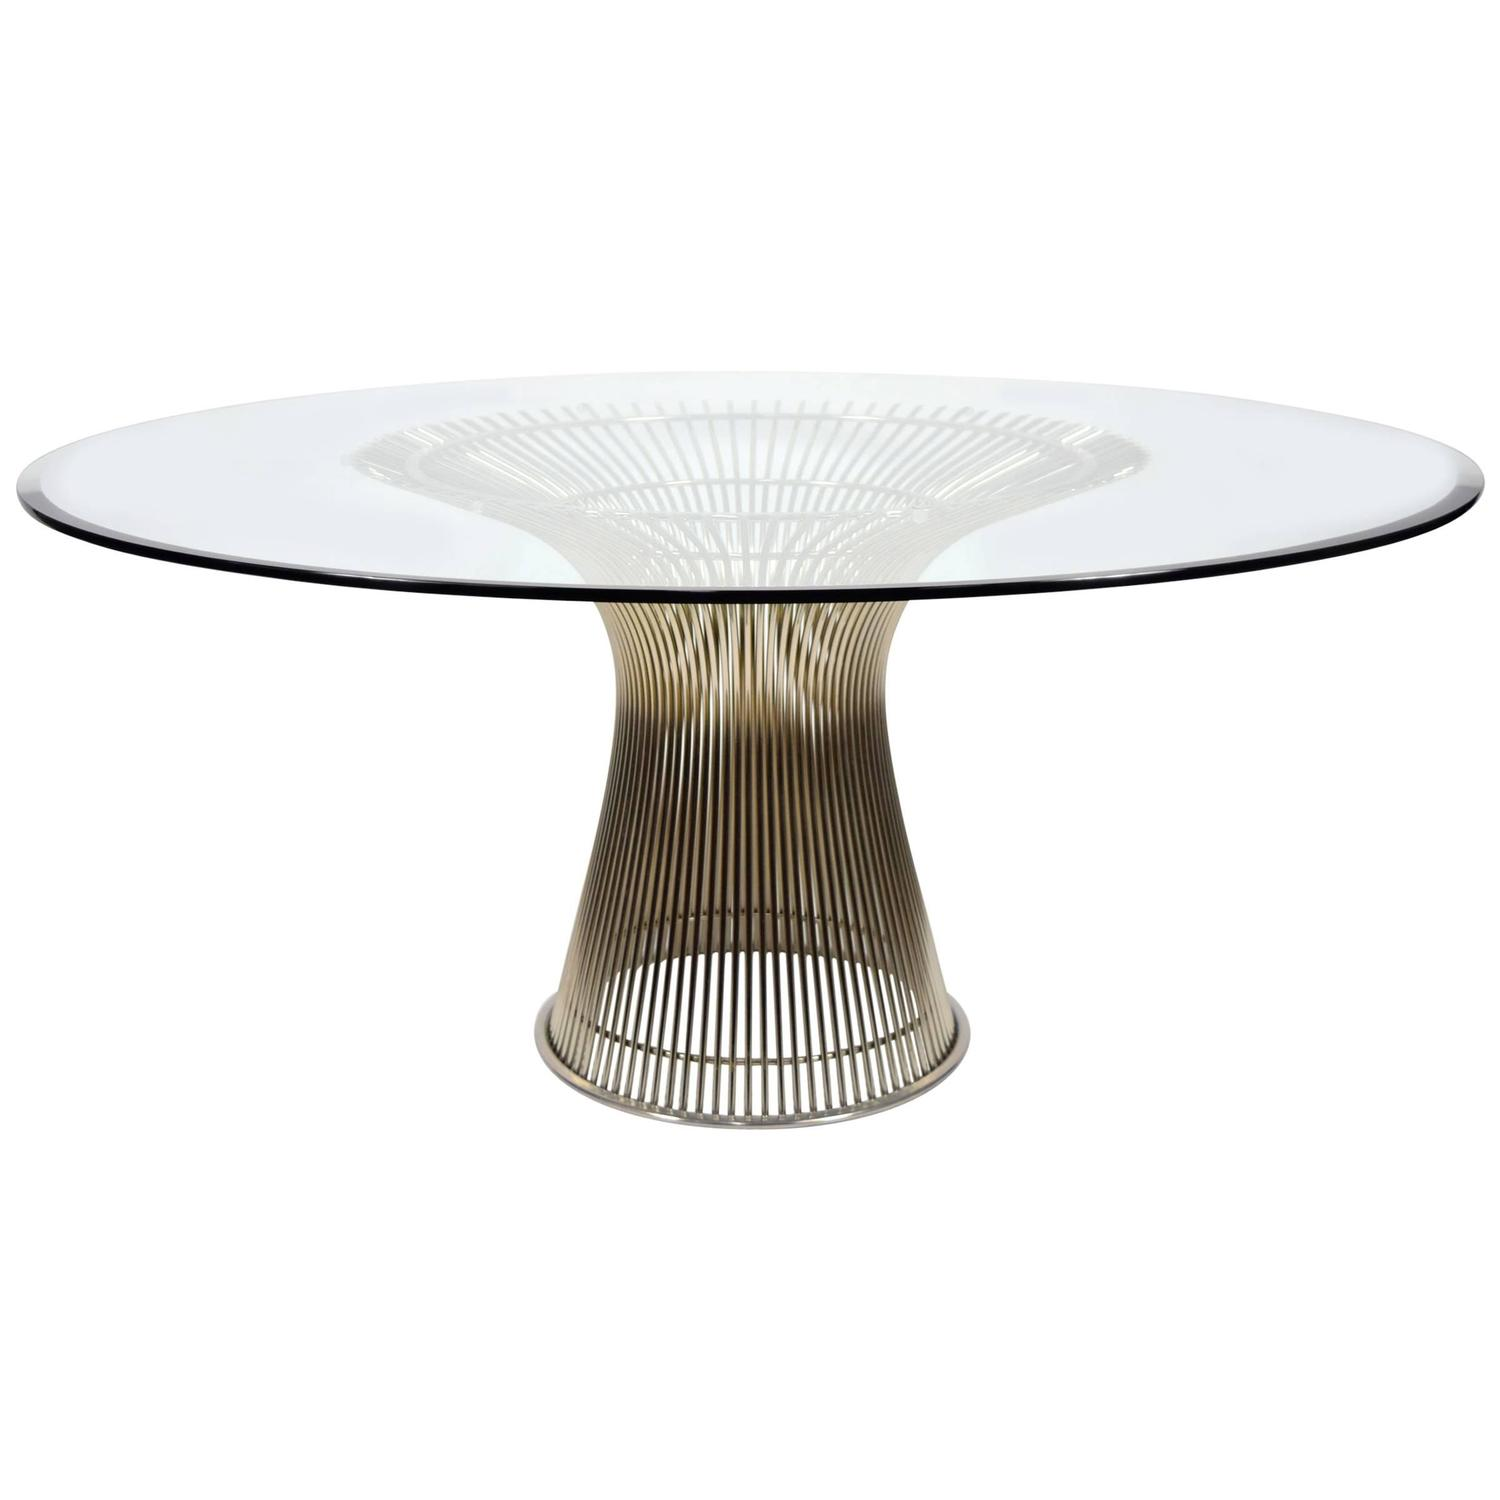 warren platner for knoll dining table at 1stdibs